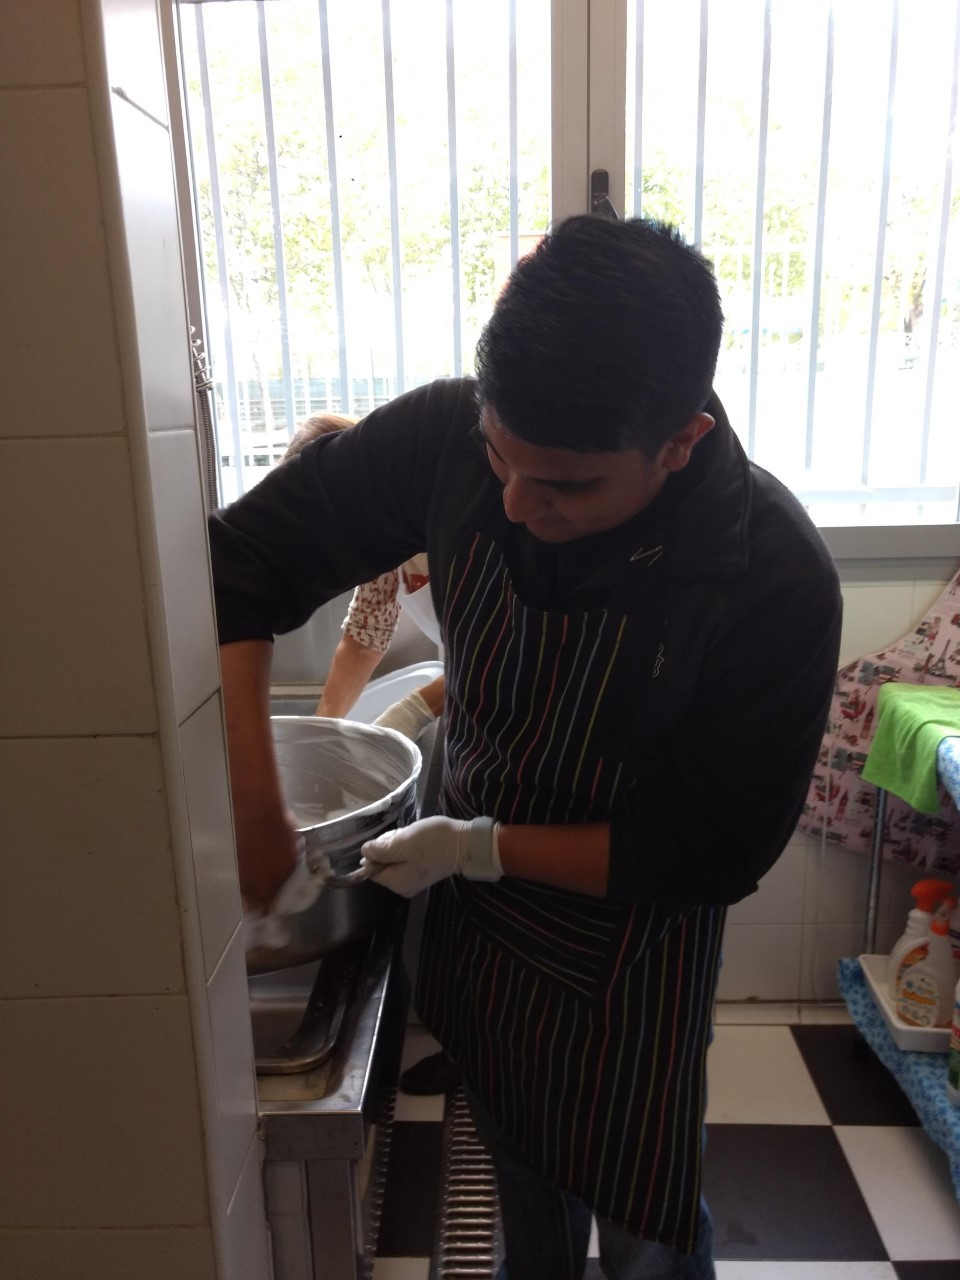 Ramon Juarez washes dishes in a soup kitchen in Madrid